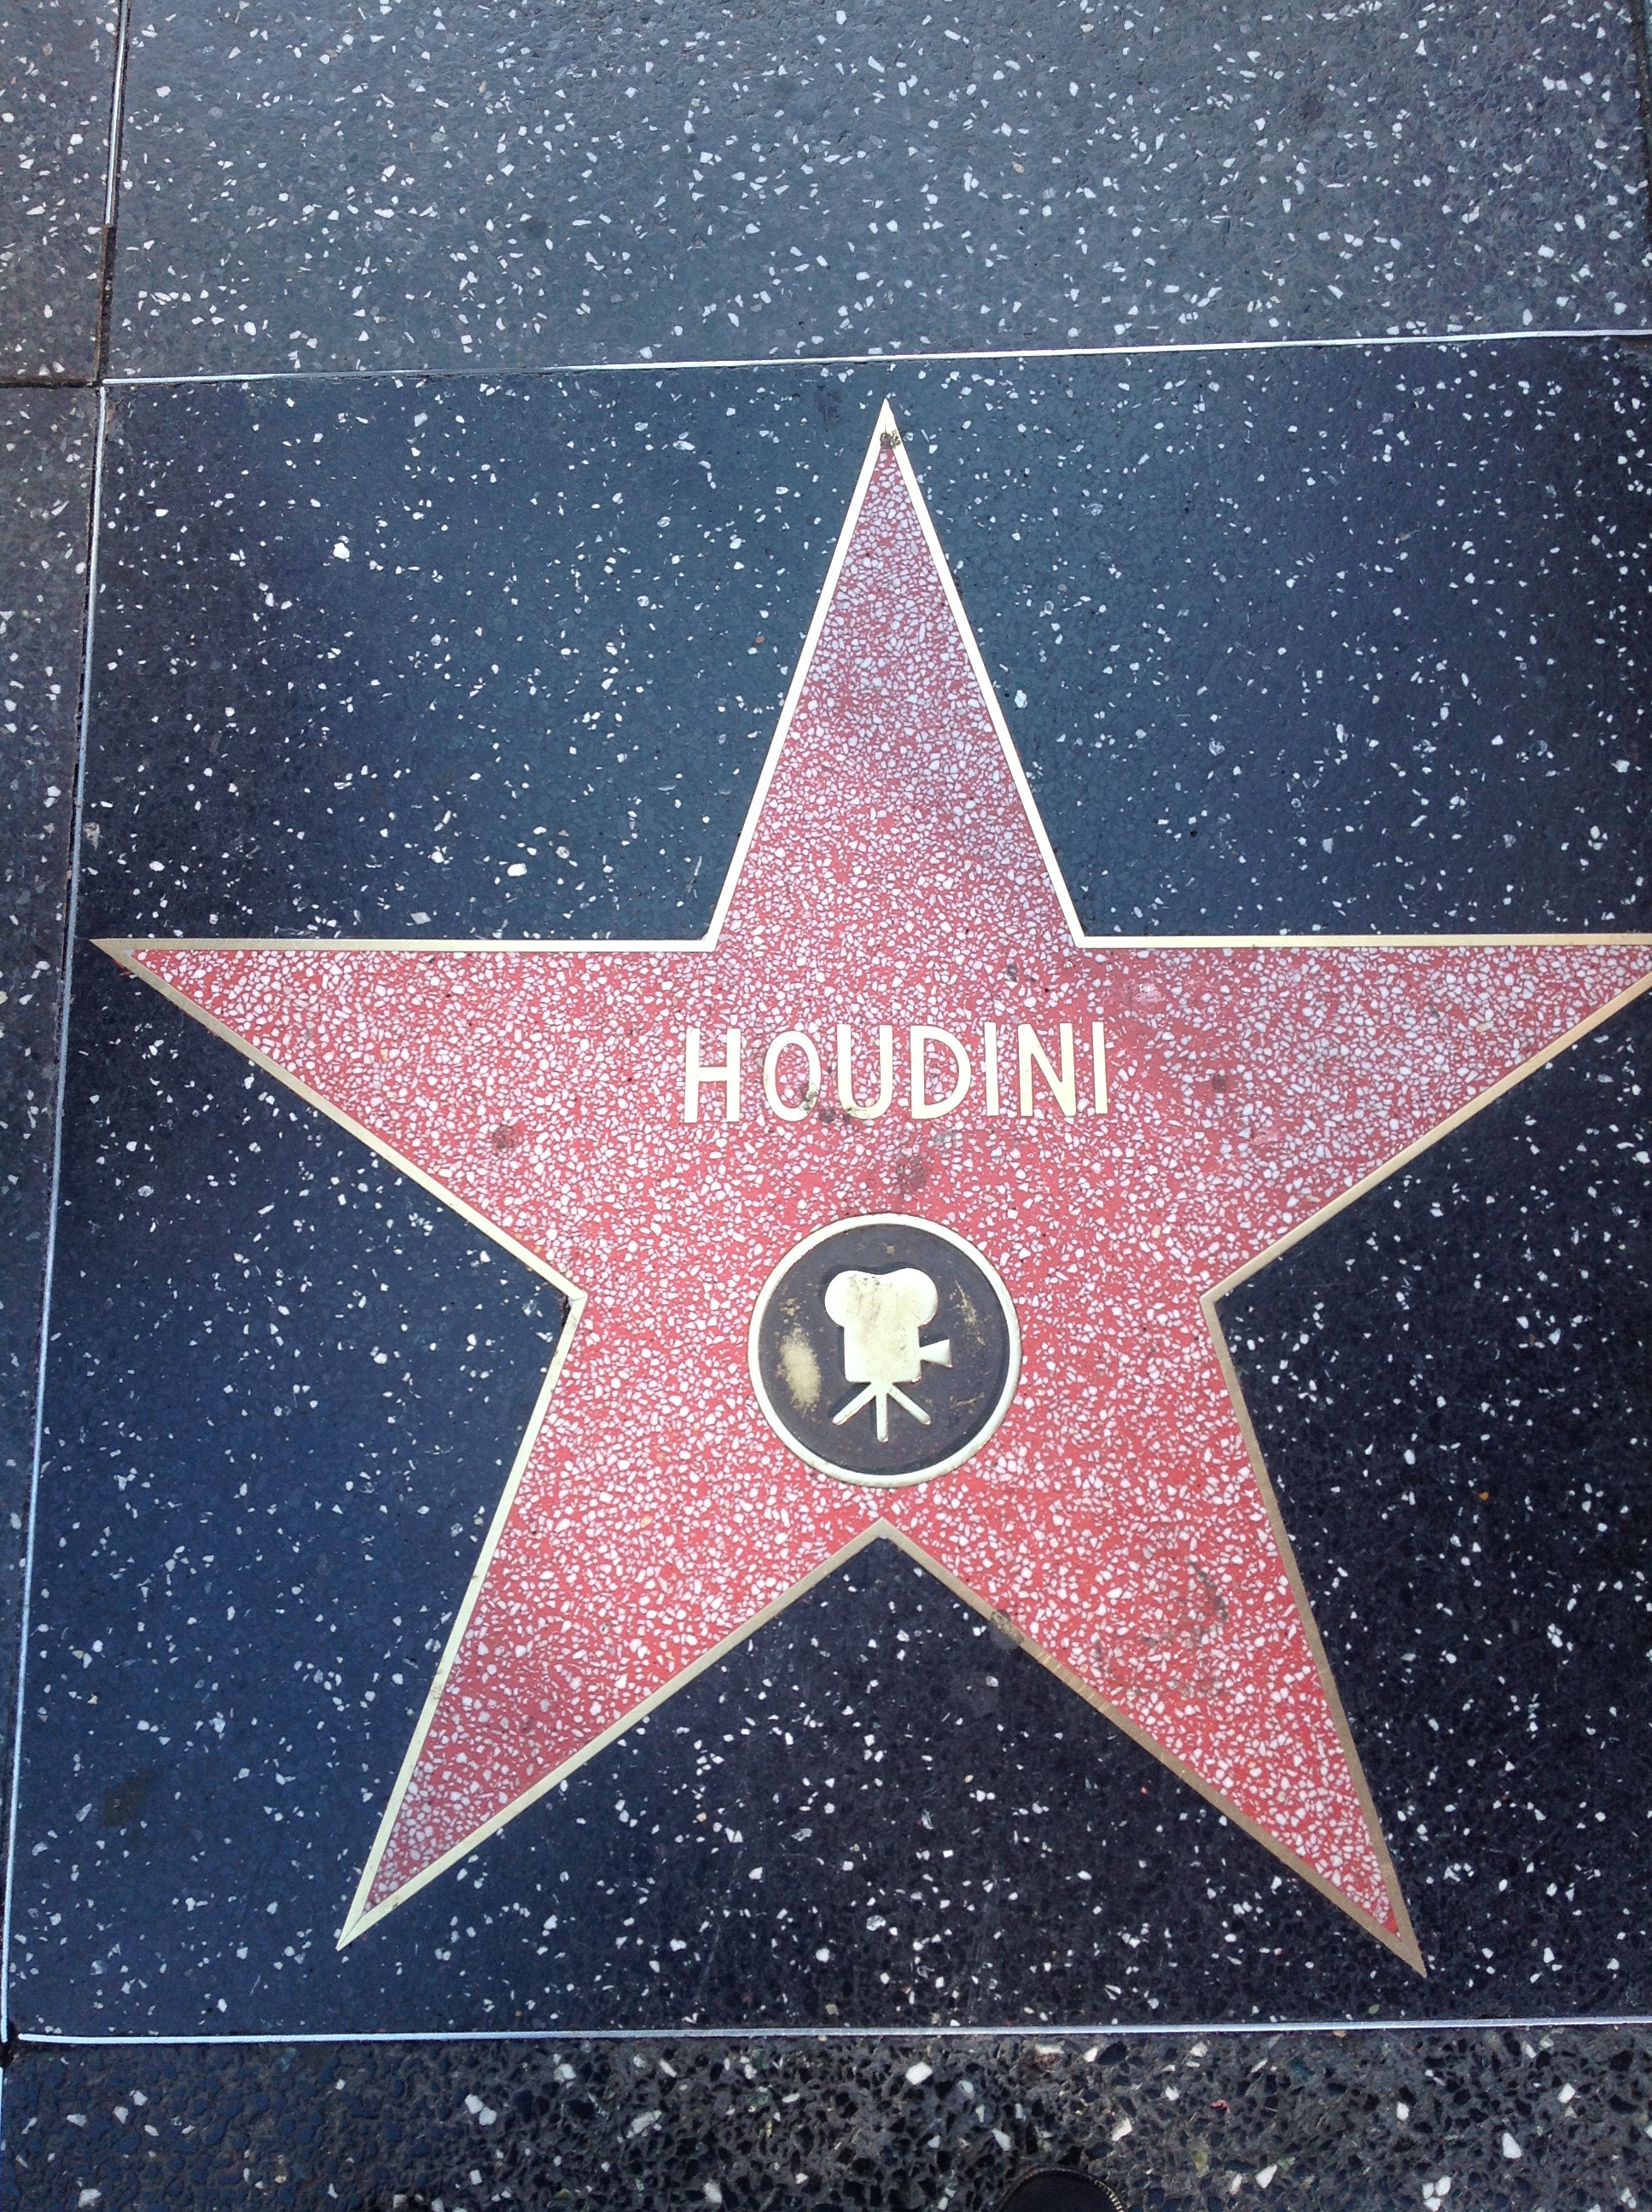 Houdini's Star on the Walk of Fame